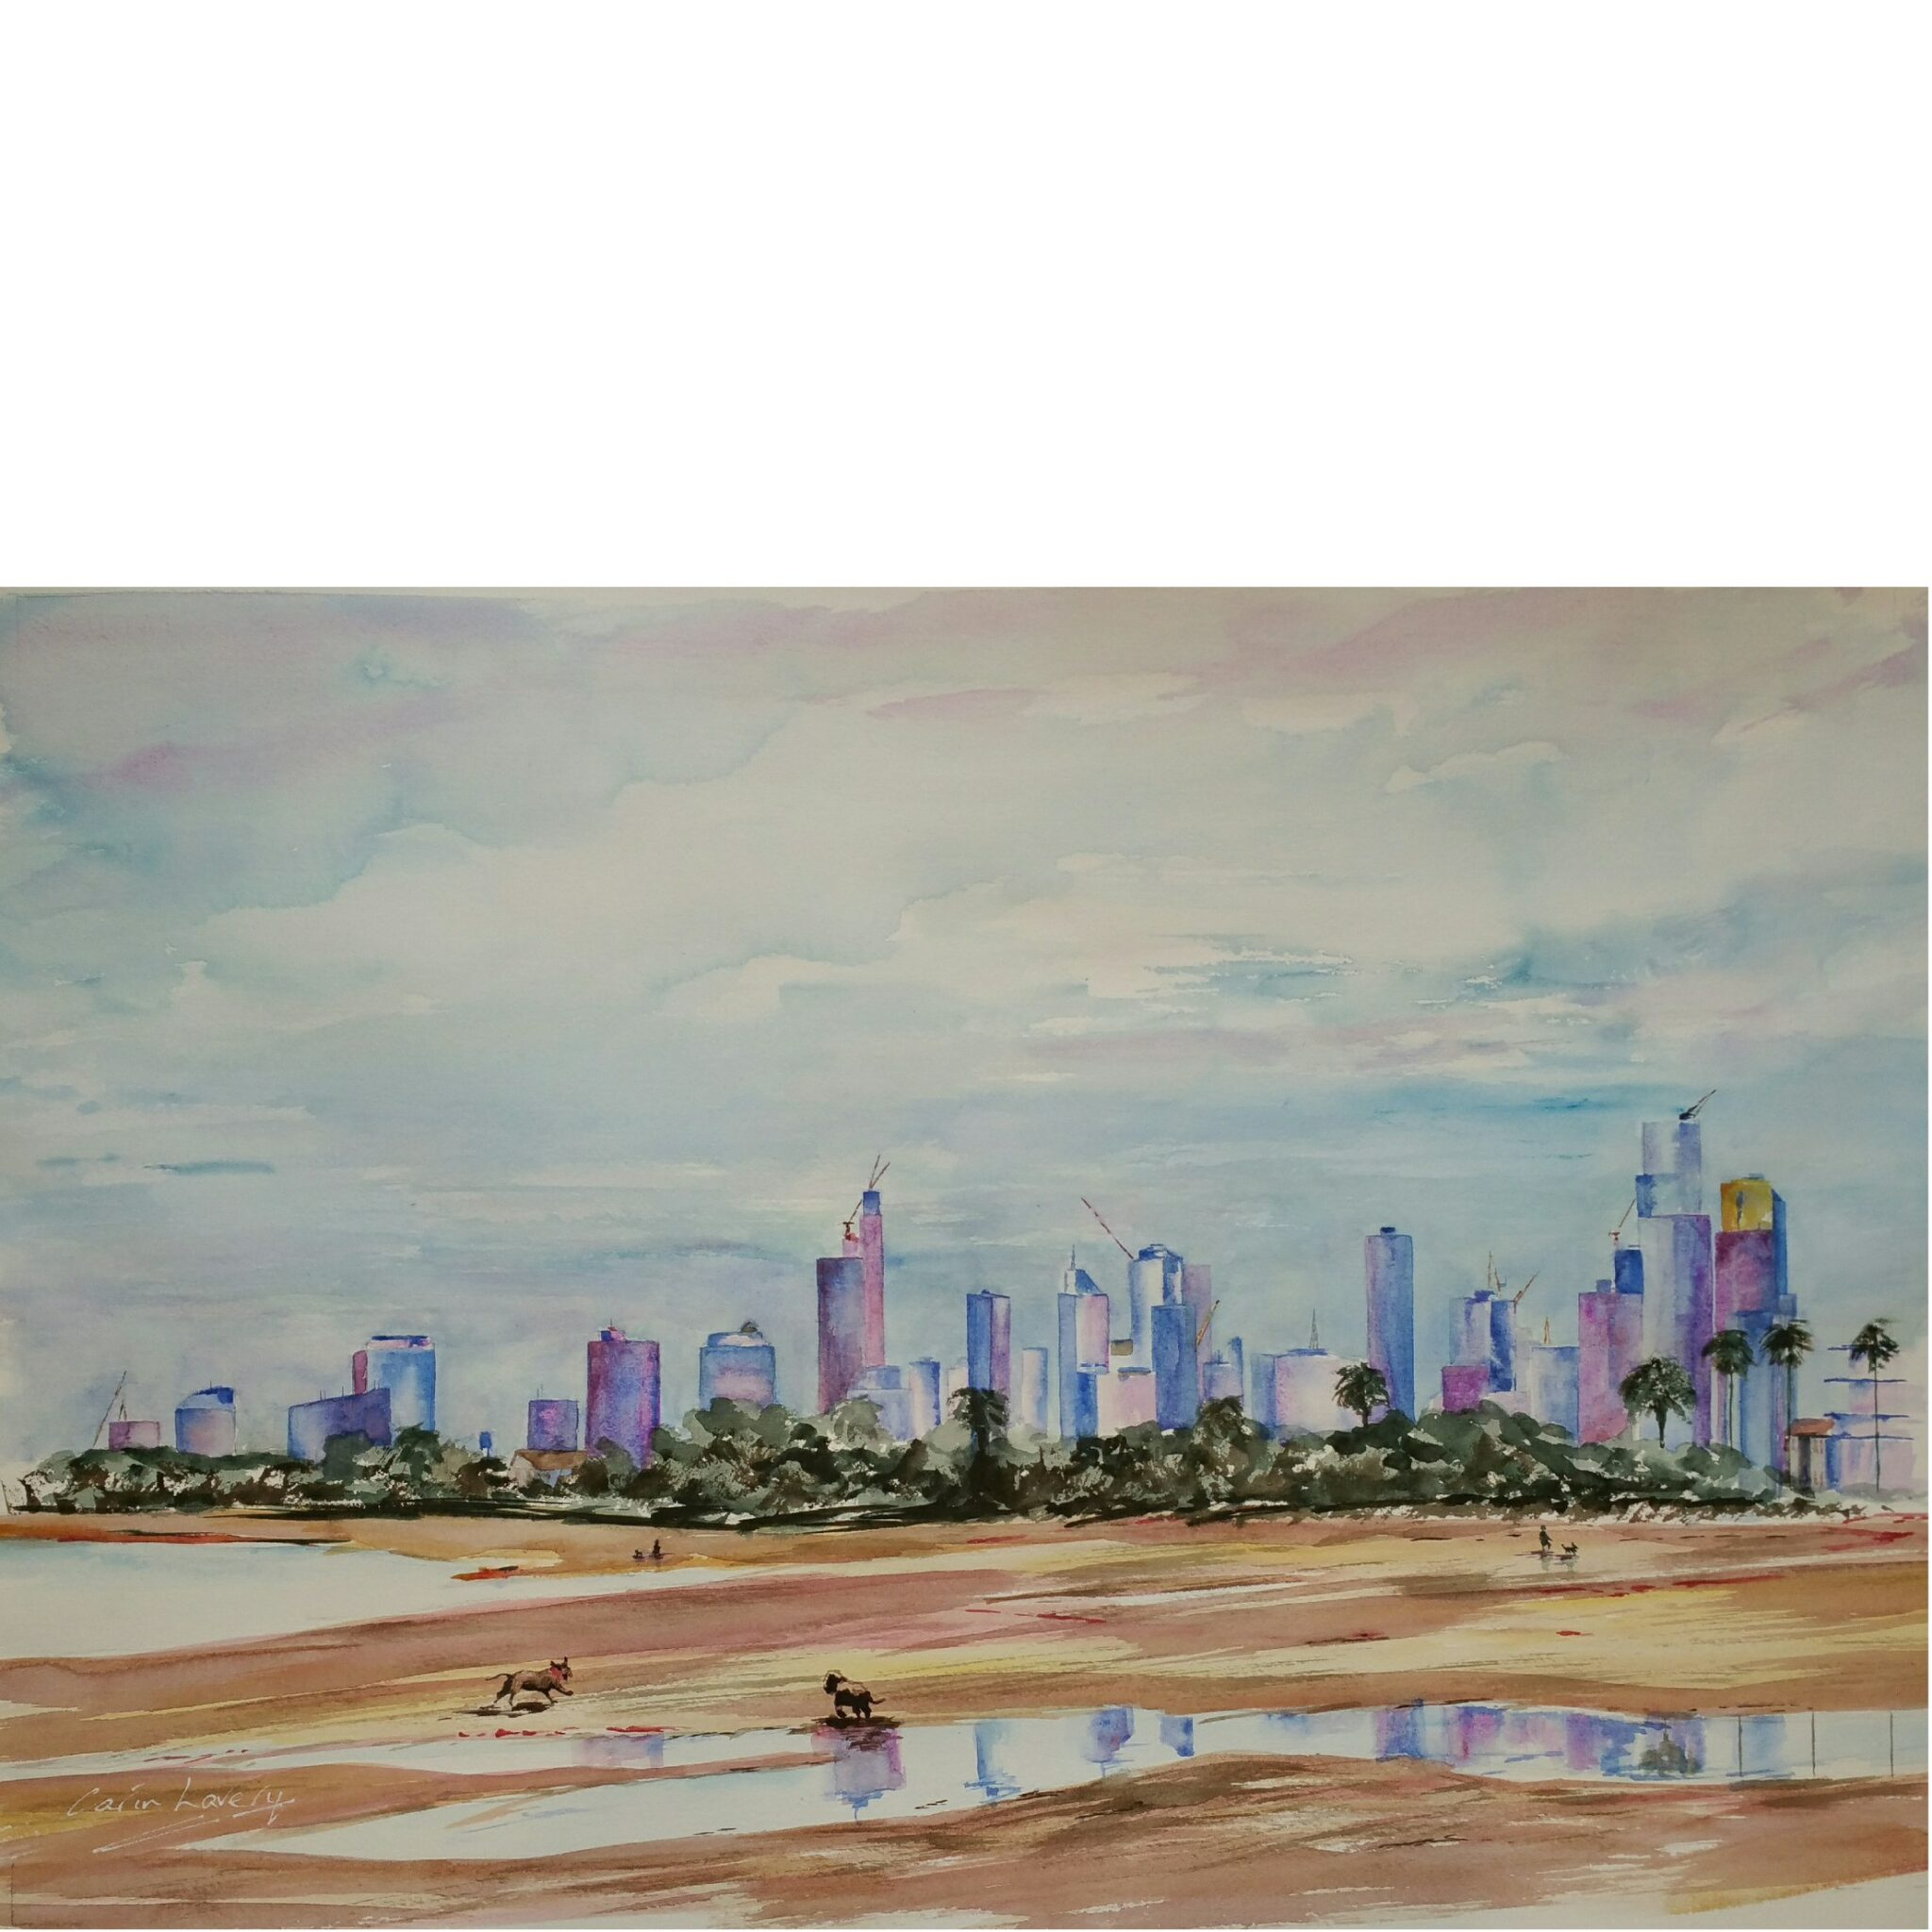 Melbourne, City On The Beach, A2 Limited Giclée Edition Print, By Watercolour Artist Carin Lavery